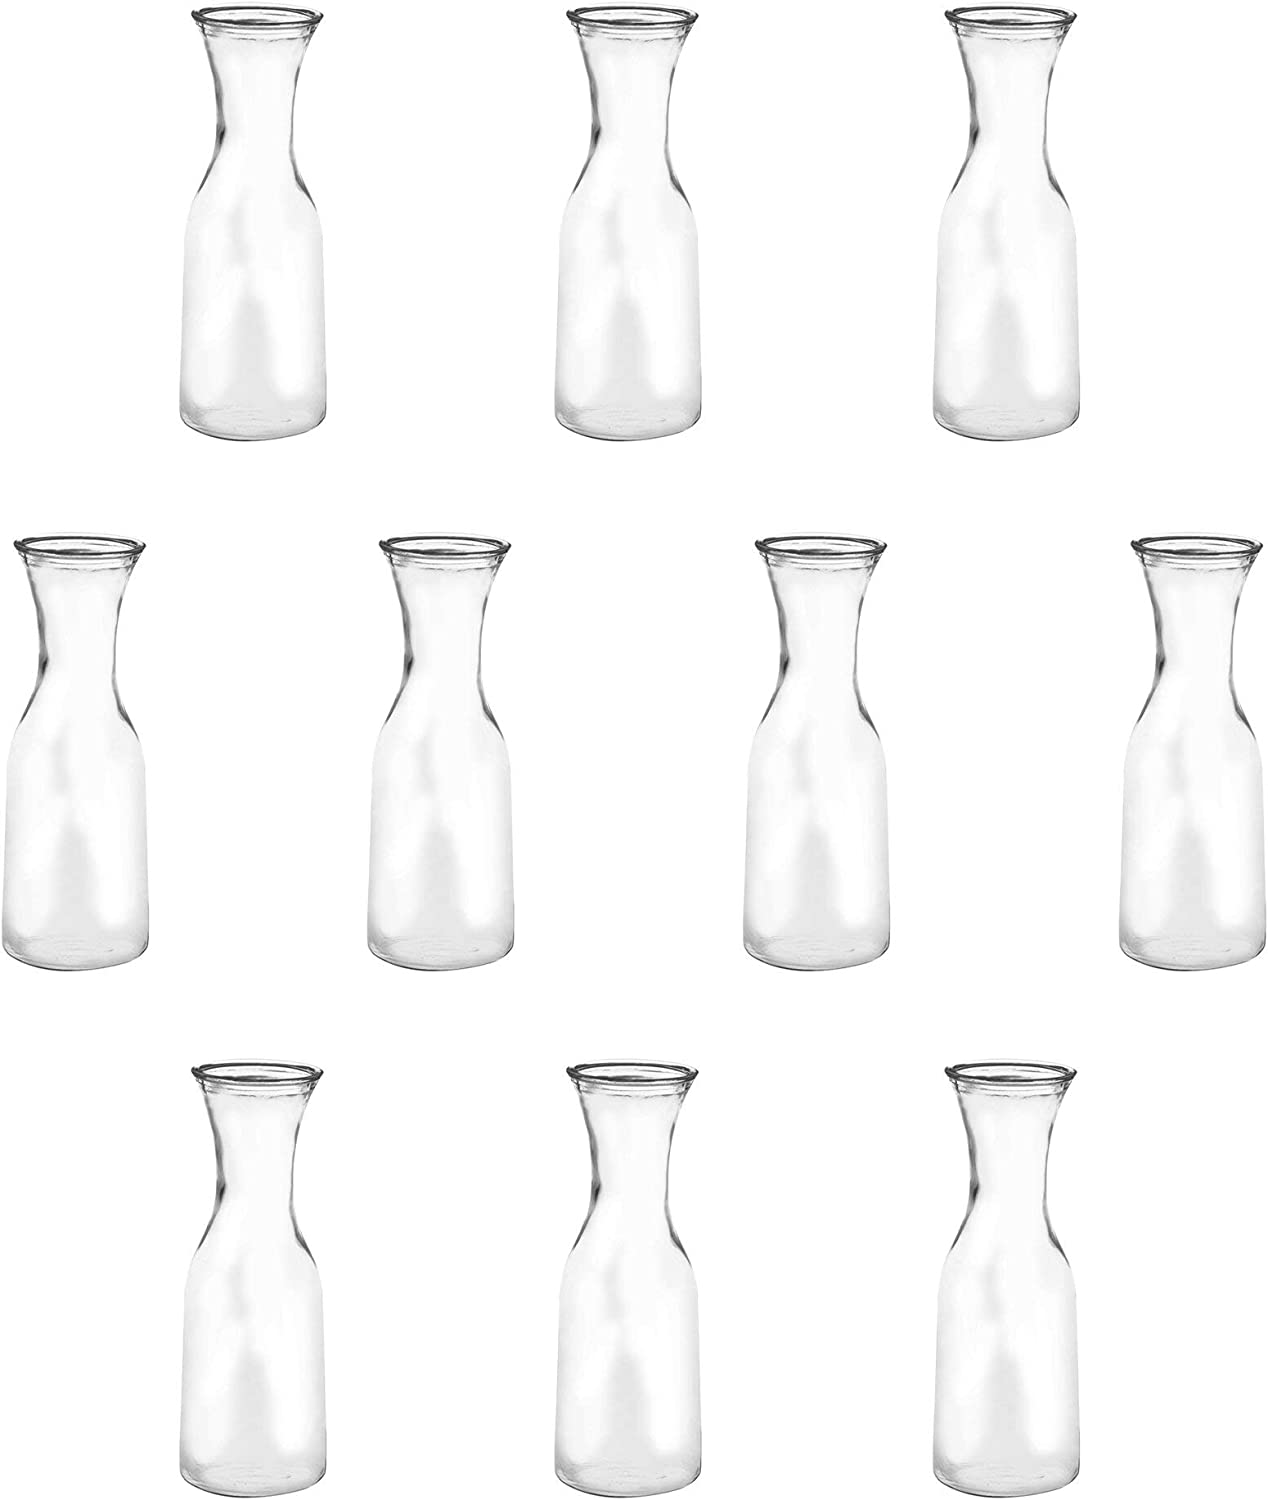 34 Overseas parallel import regular item oz. Clear Glass Water Carafes Decante BPA Max 64% OFF Wine pack Free 10